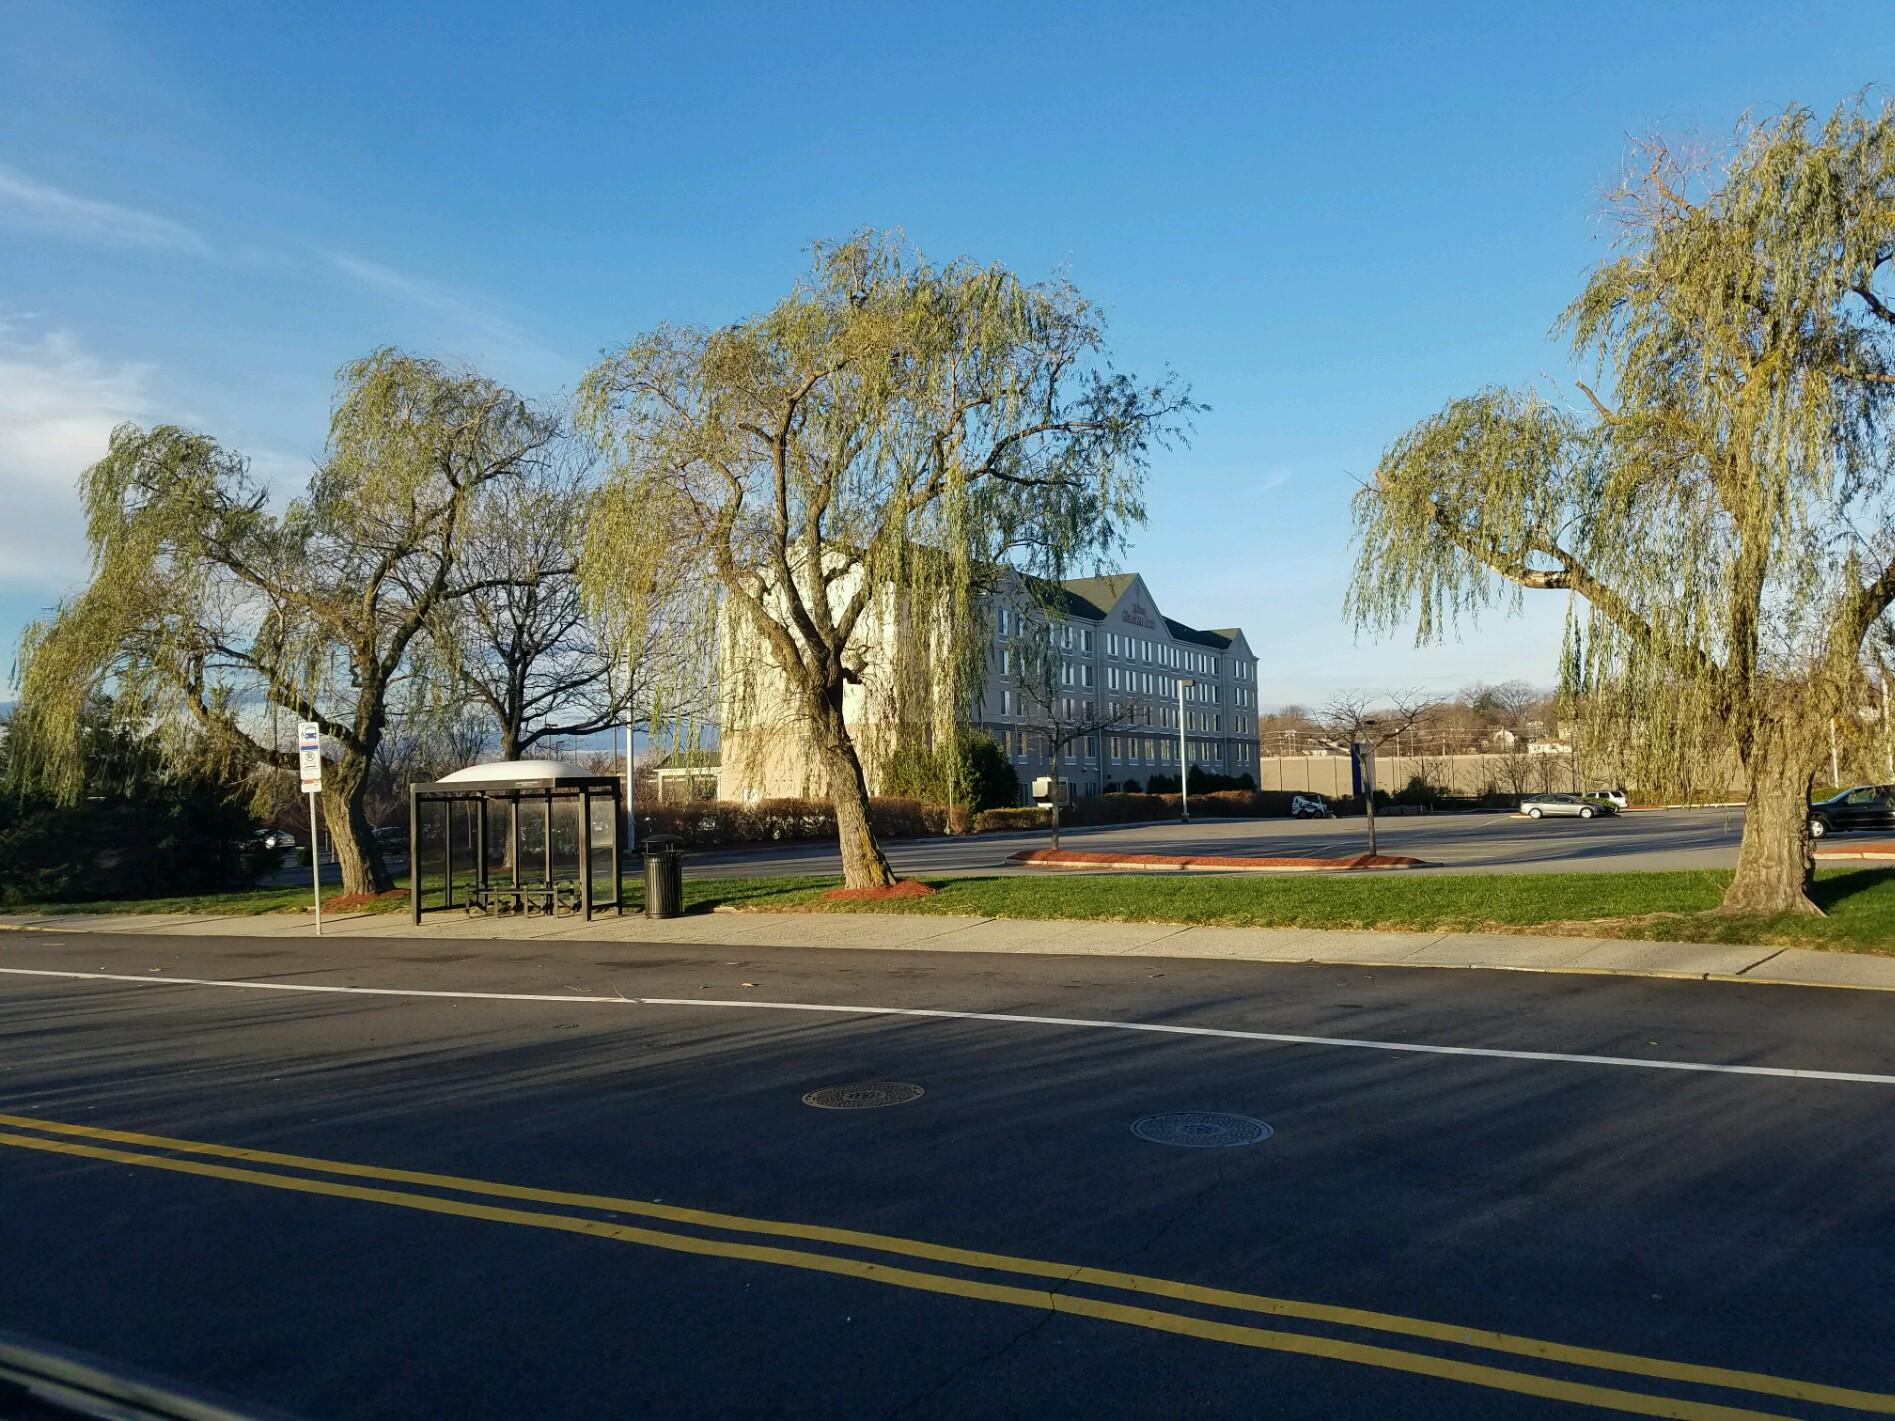 two night stop to visit new york - Hilton Garden Inn Ridgefield Park